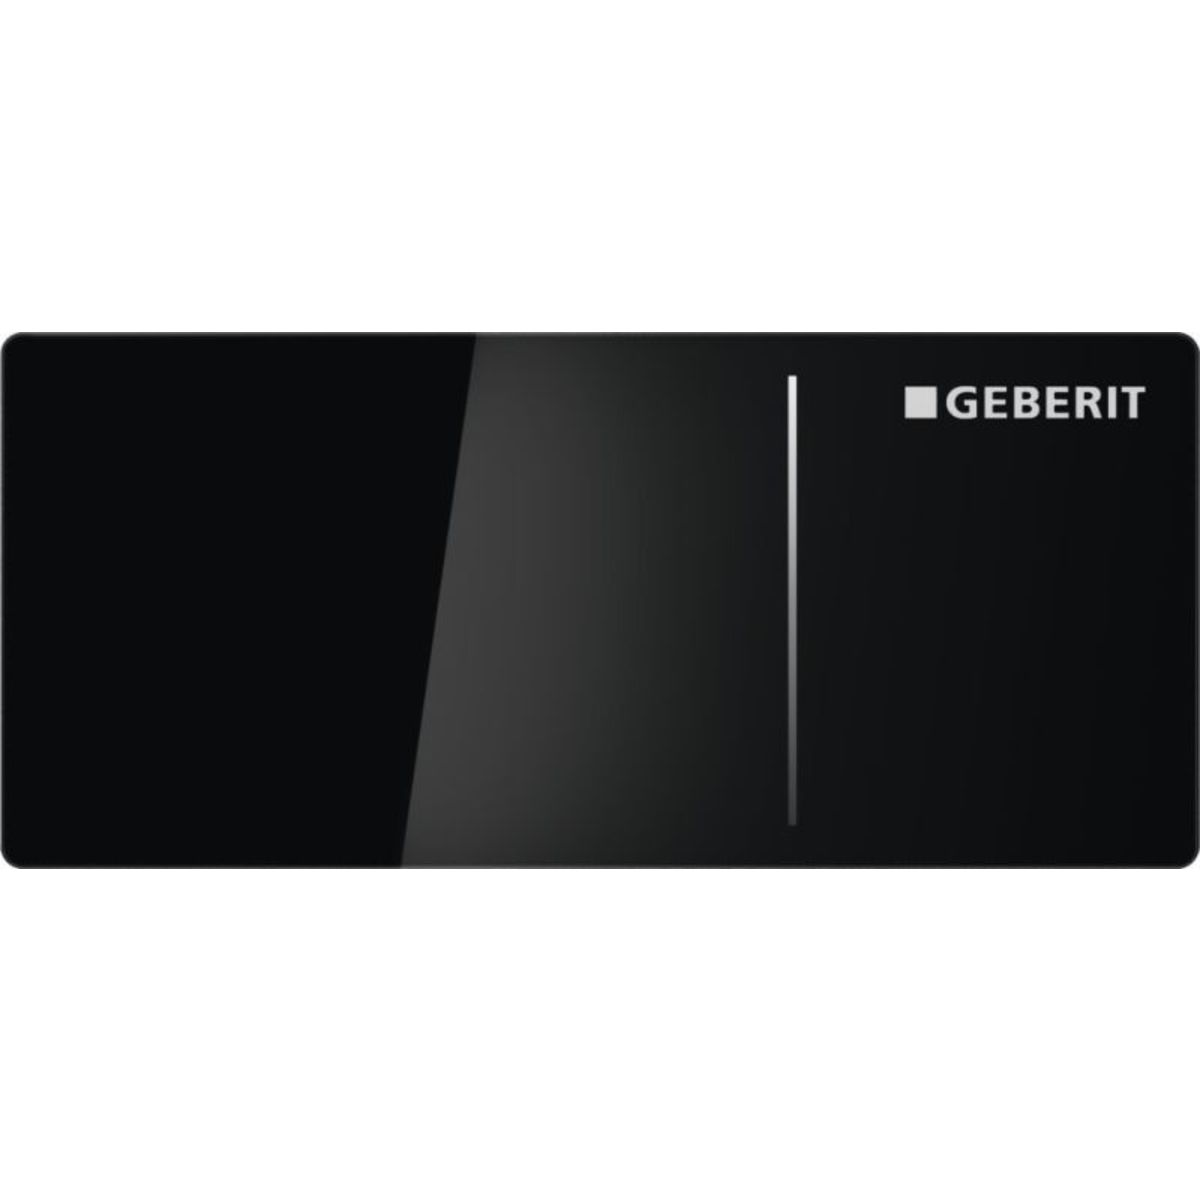 geberit omega70 plaque de commande encastrable pour geberit omega r servoir encastrable 12cm 11. Black Bedroom Furniture Sets. Home Design Ideas